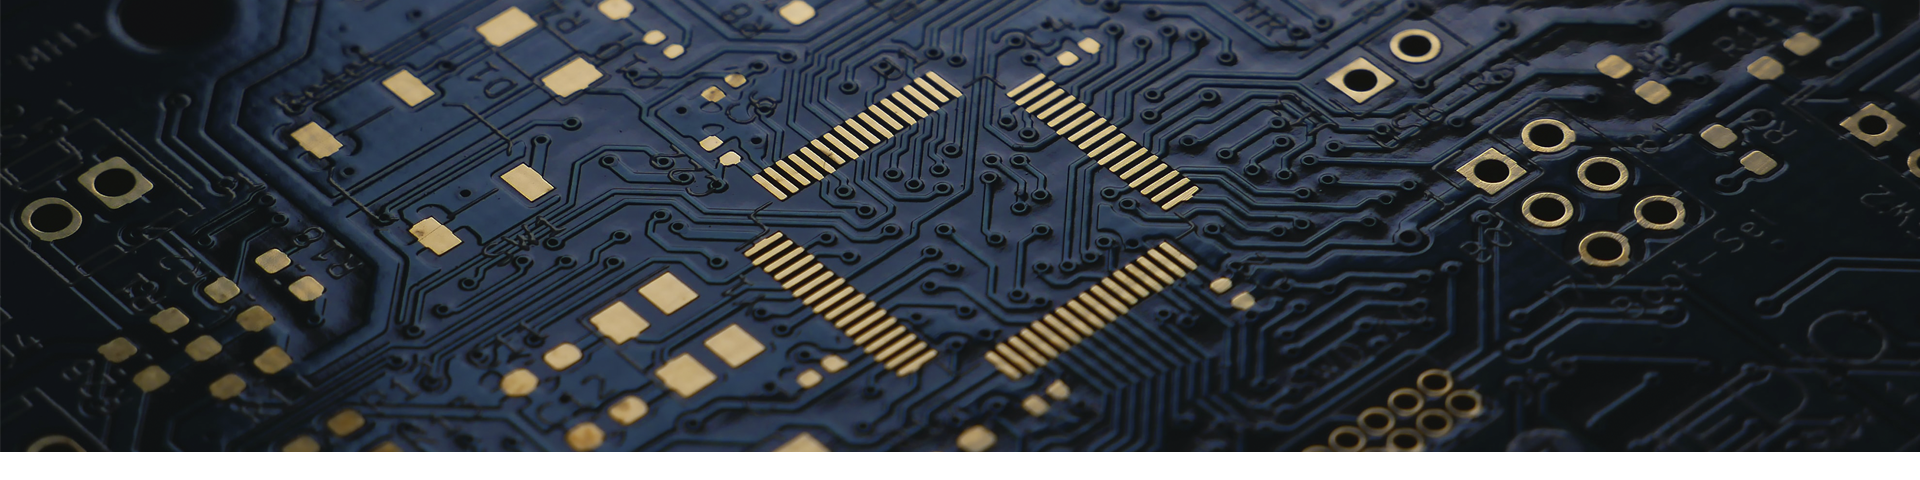 promwad PCB manufacturing and assembly services